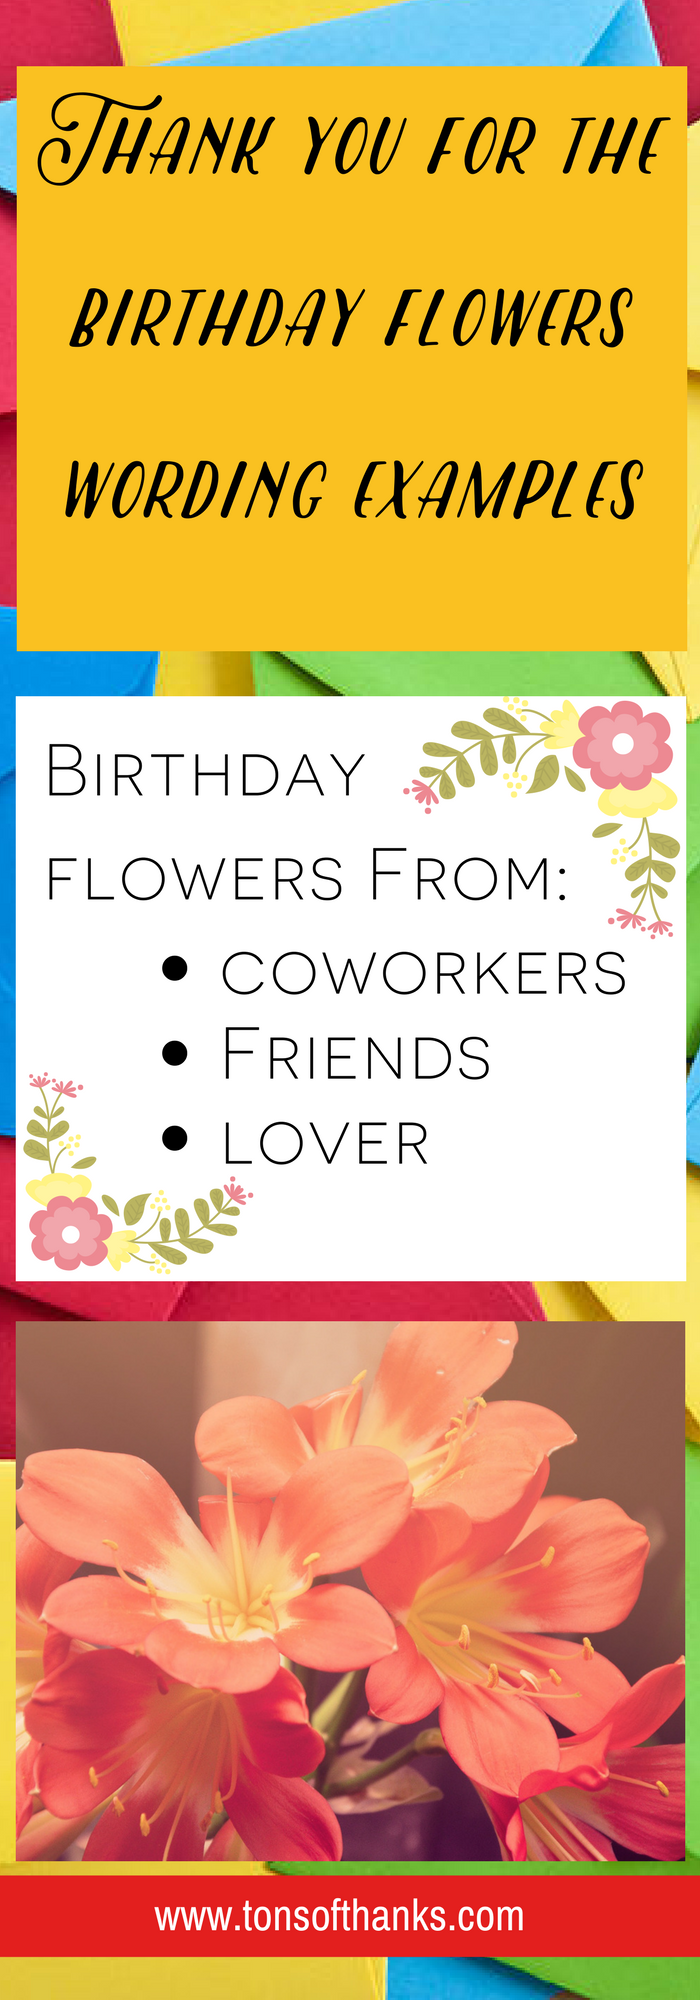 Thank you for the birthday flowers wording examples thank whoever thank you for the birthday flowers wording examples thank whoever gave your birthday flowers with izmirmasajfo